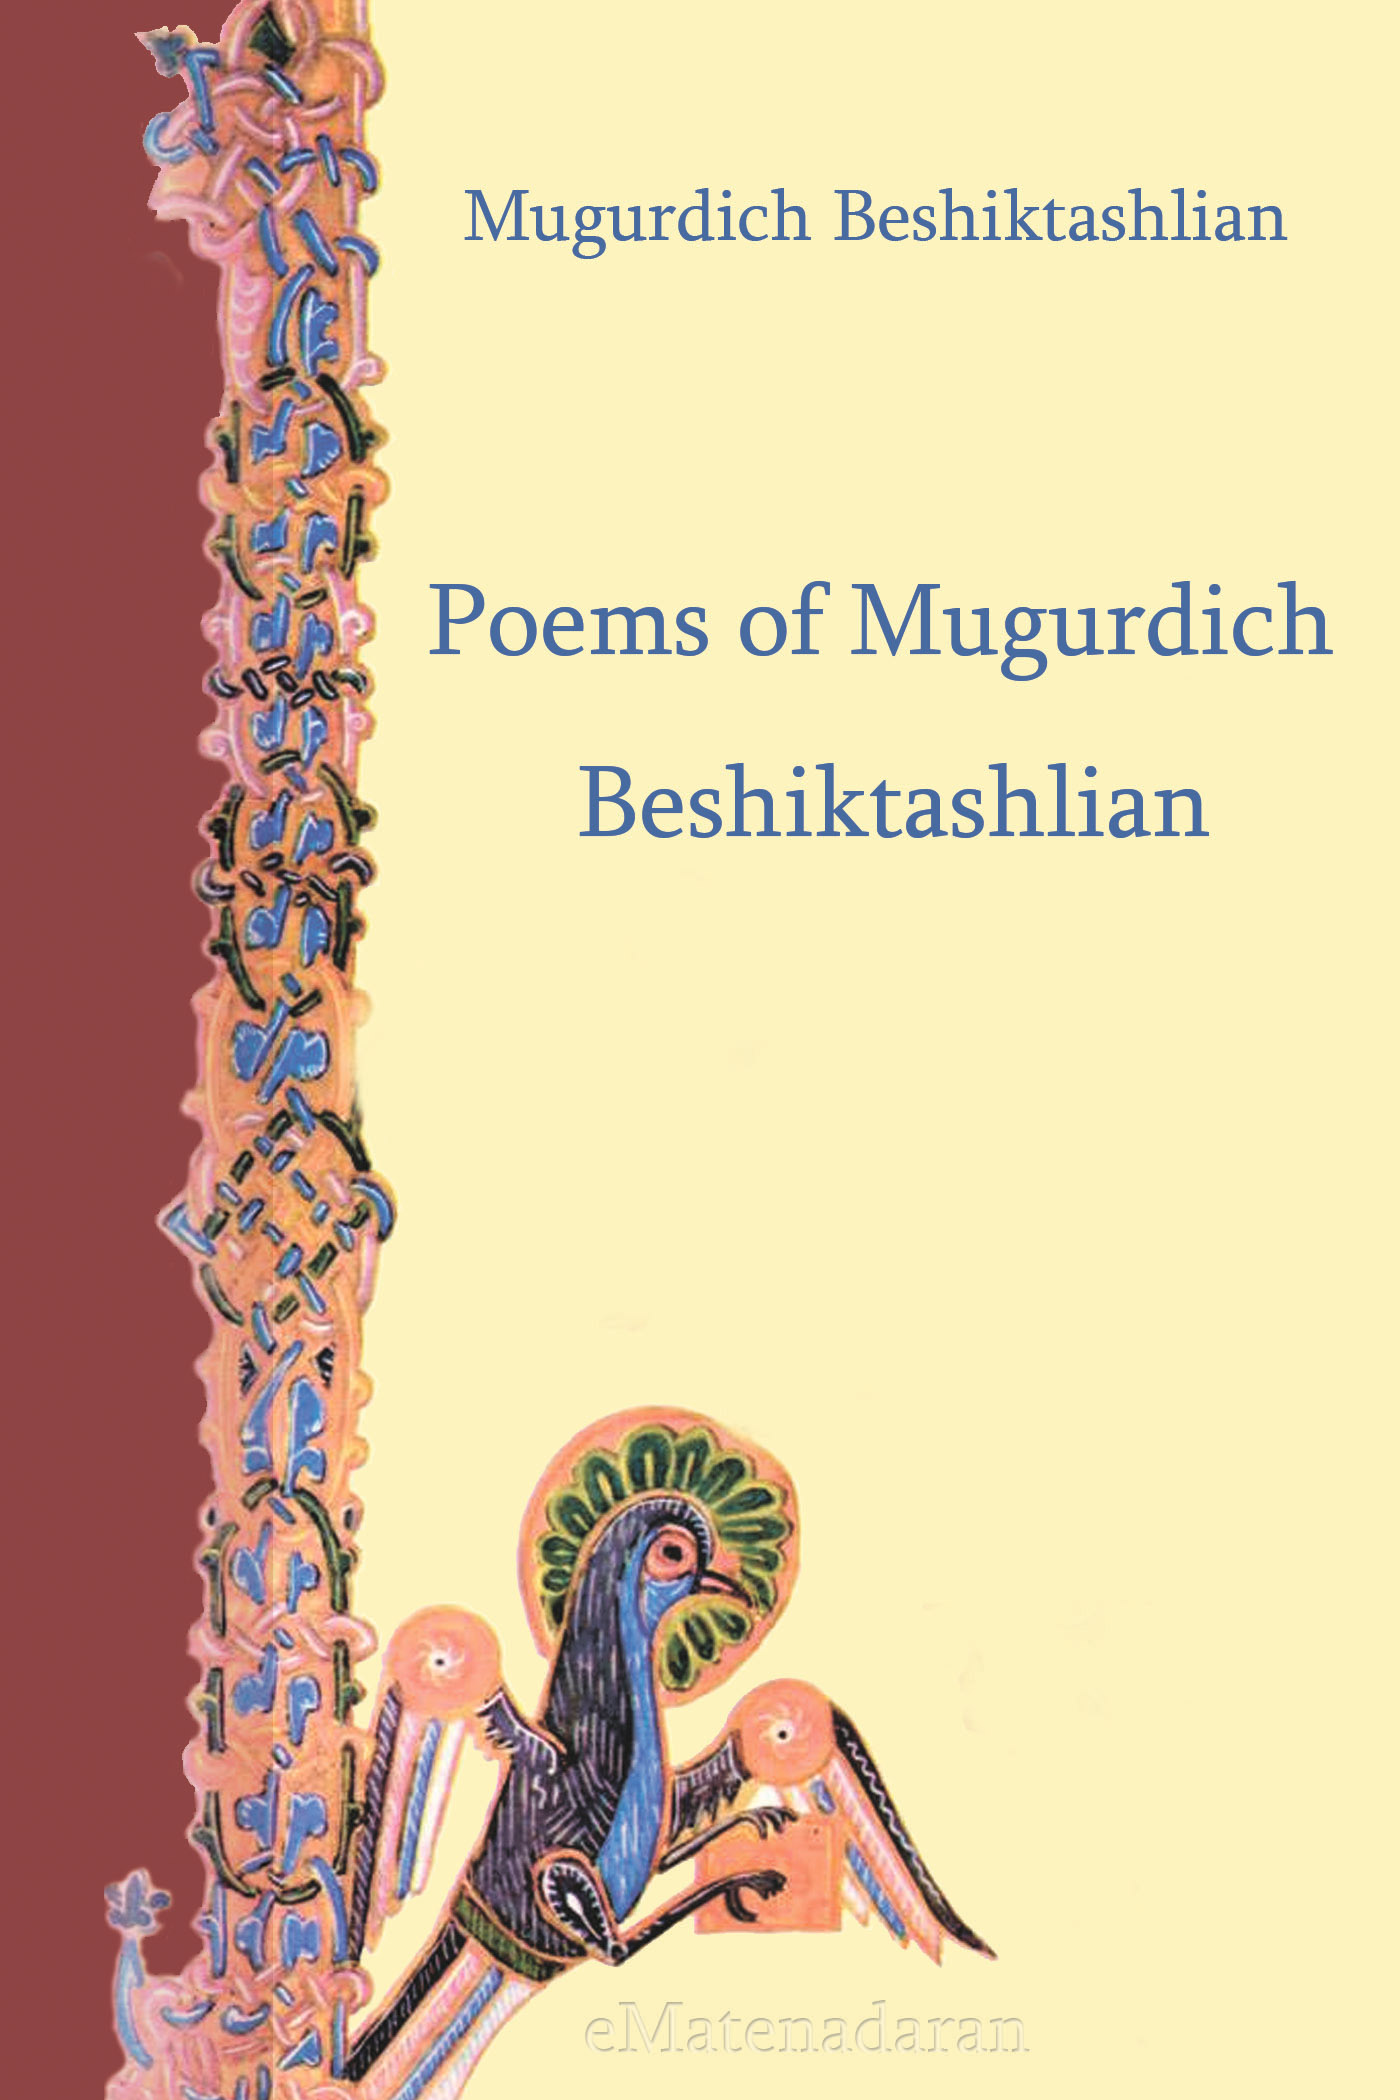 Beshiktashlian Mugurdich Poems of Mugurdich Beshiktashlian poems from the moor